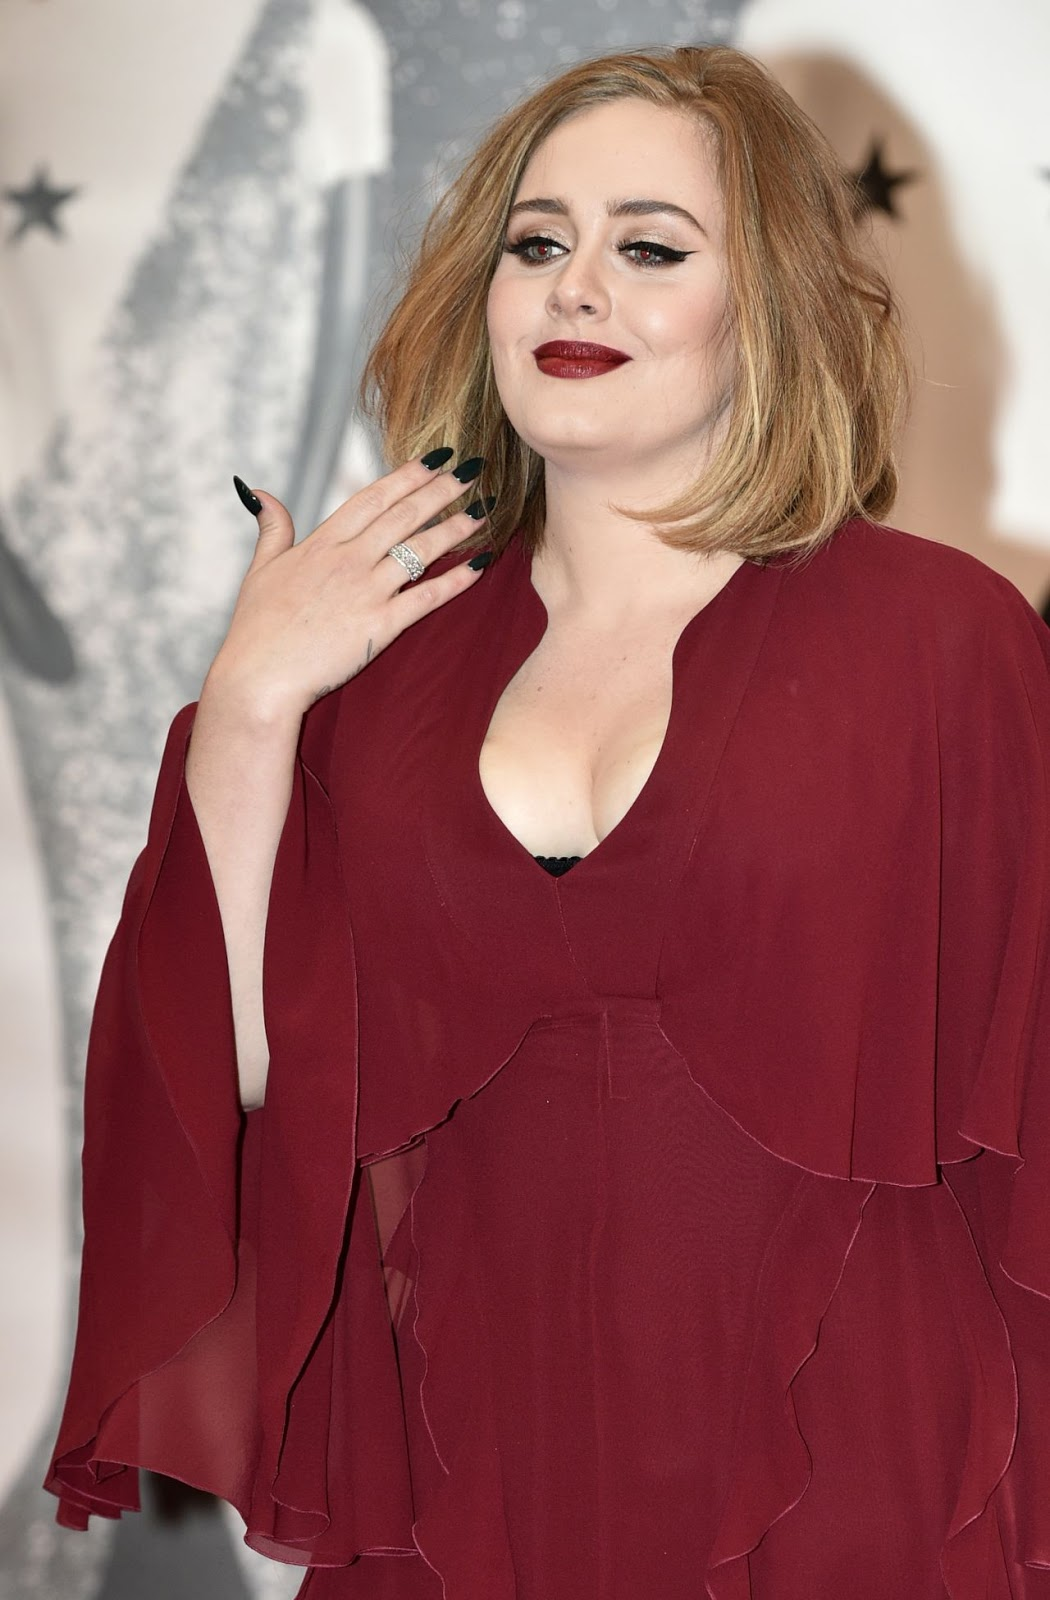 Adele bares cleavage at the Brit Awards 2016